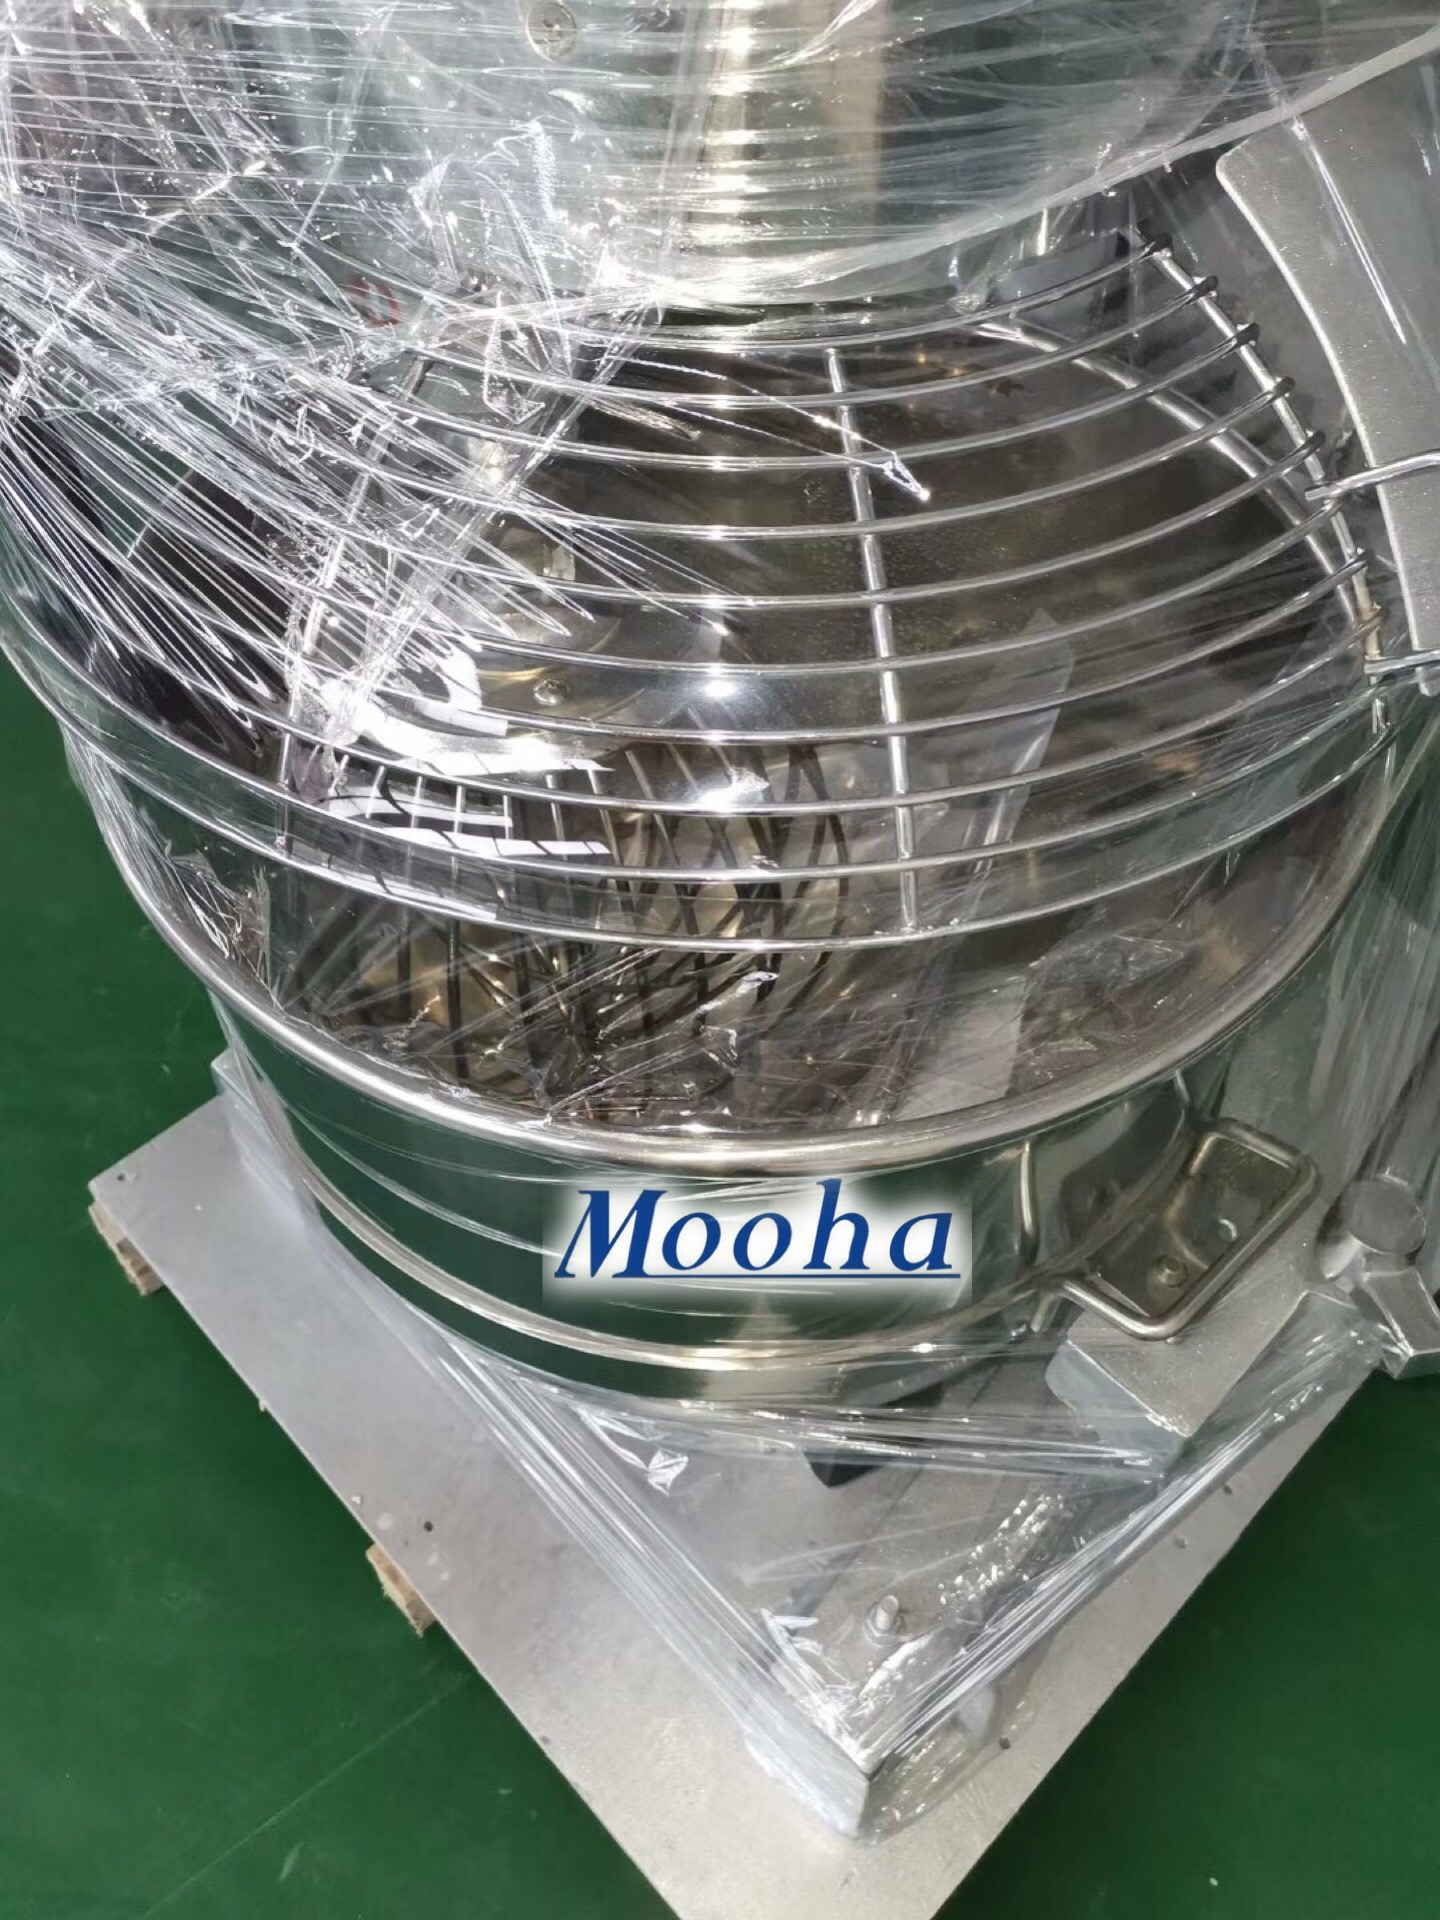 Commercial 80 Liters Planetary Mixer High Quality 8-12 KG powder Kneading Cake Biscuits Cookies Cream Egg Butter Dough Mixing Bakery Machine